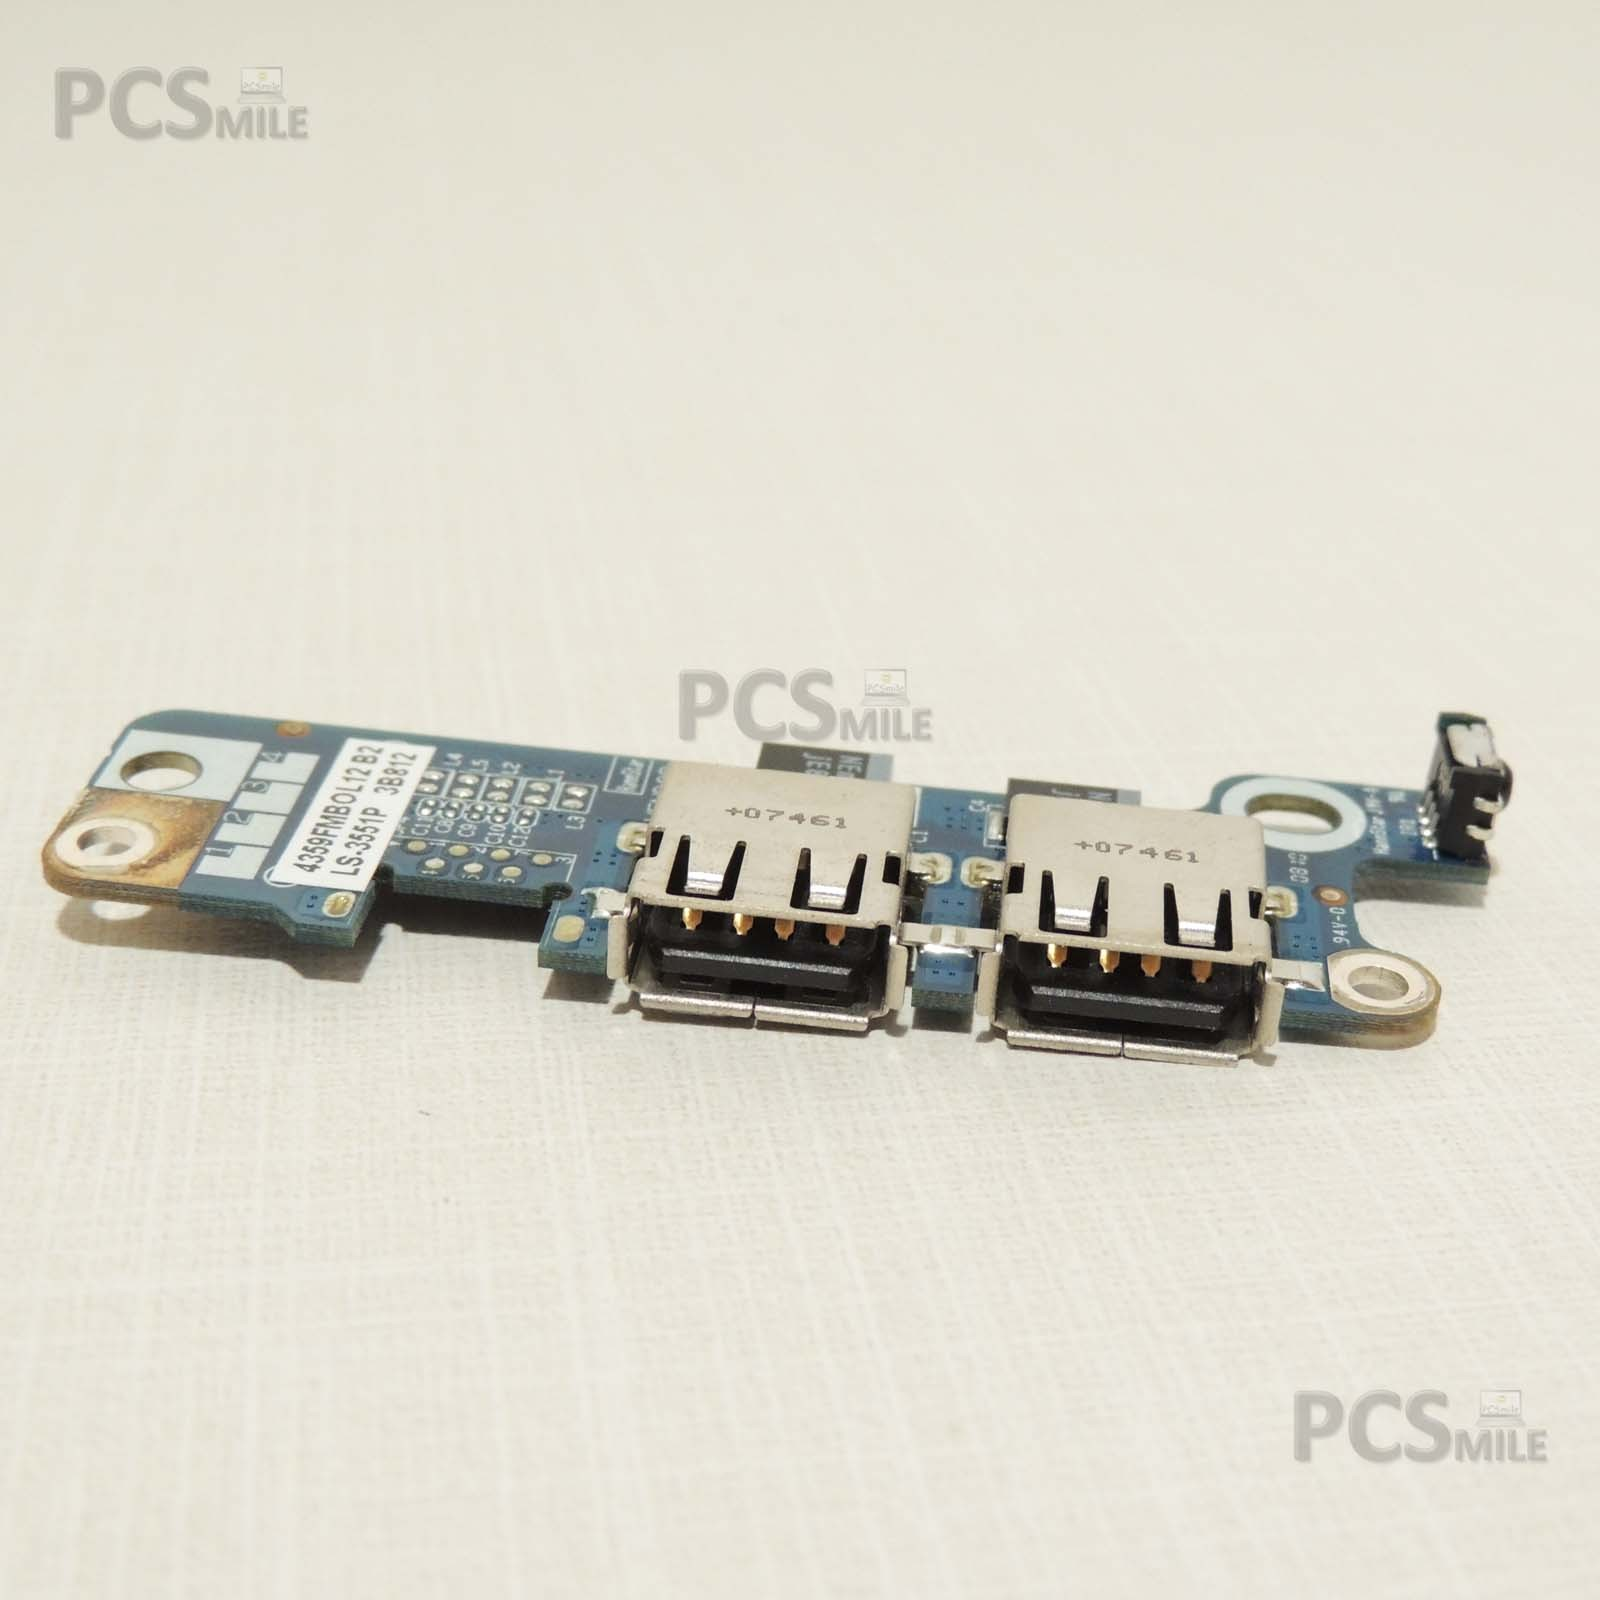 Porte USB Board Acer Aspire 7520 Series ICL50 LS-3551P